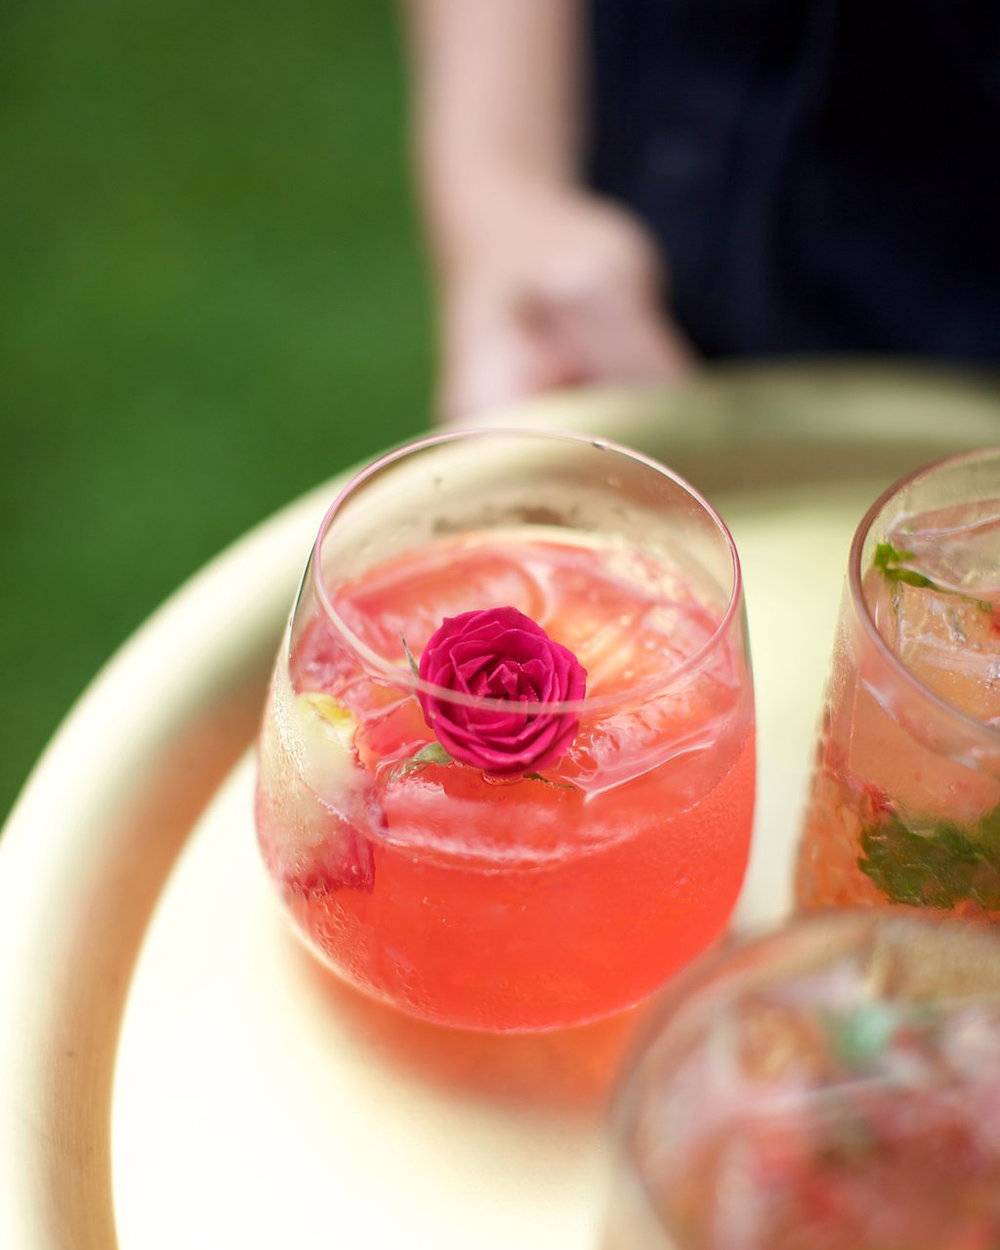 ROSEJITO   rose petals, fresh pressed lime, house rose syrup, fresh raspberry-infused vodka, float of bubbly